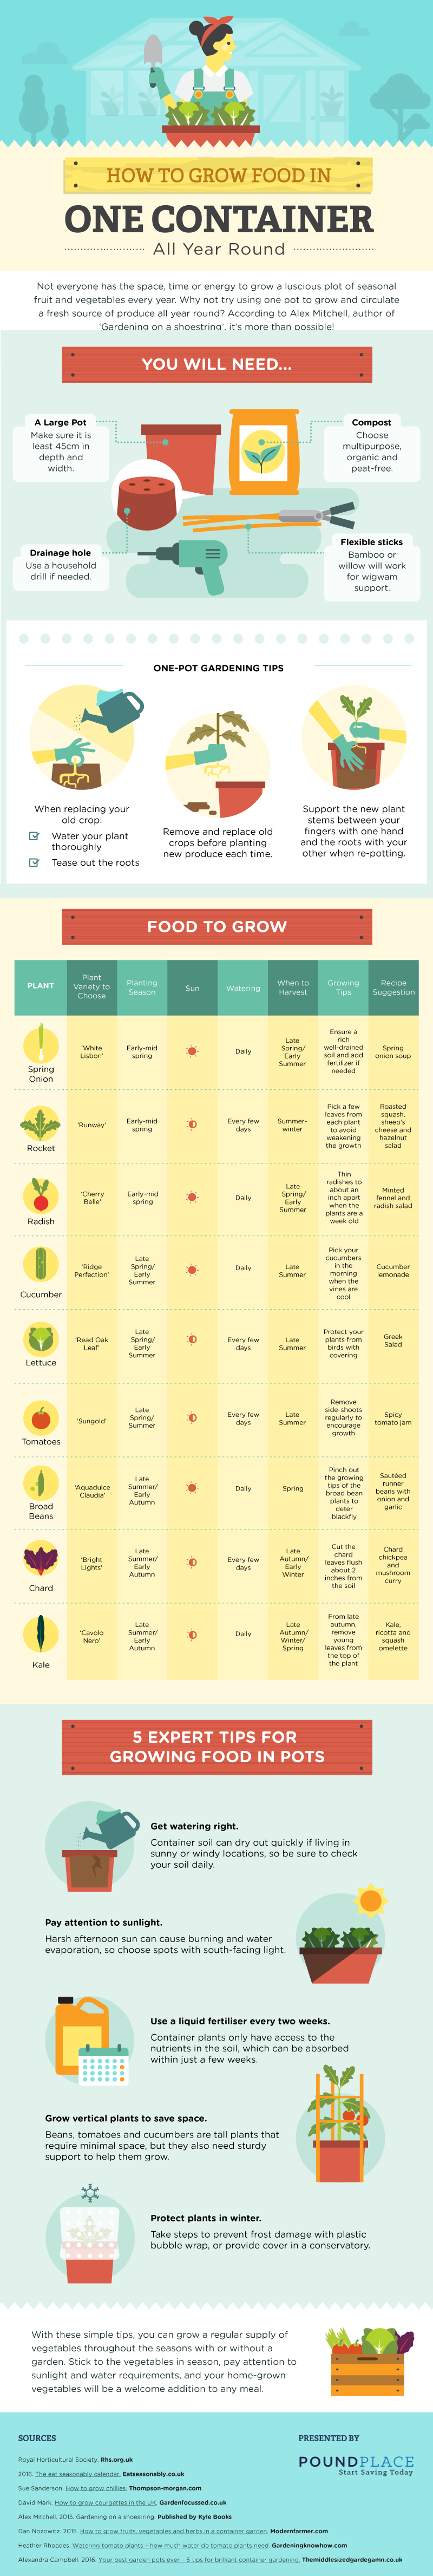 How to grow food all year round - infographic